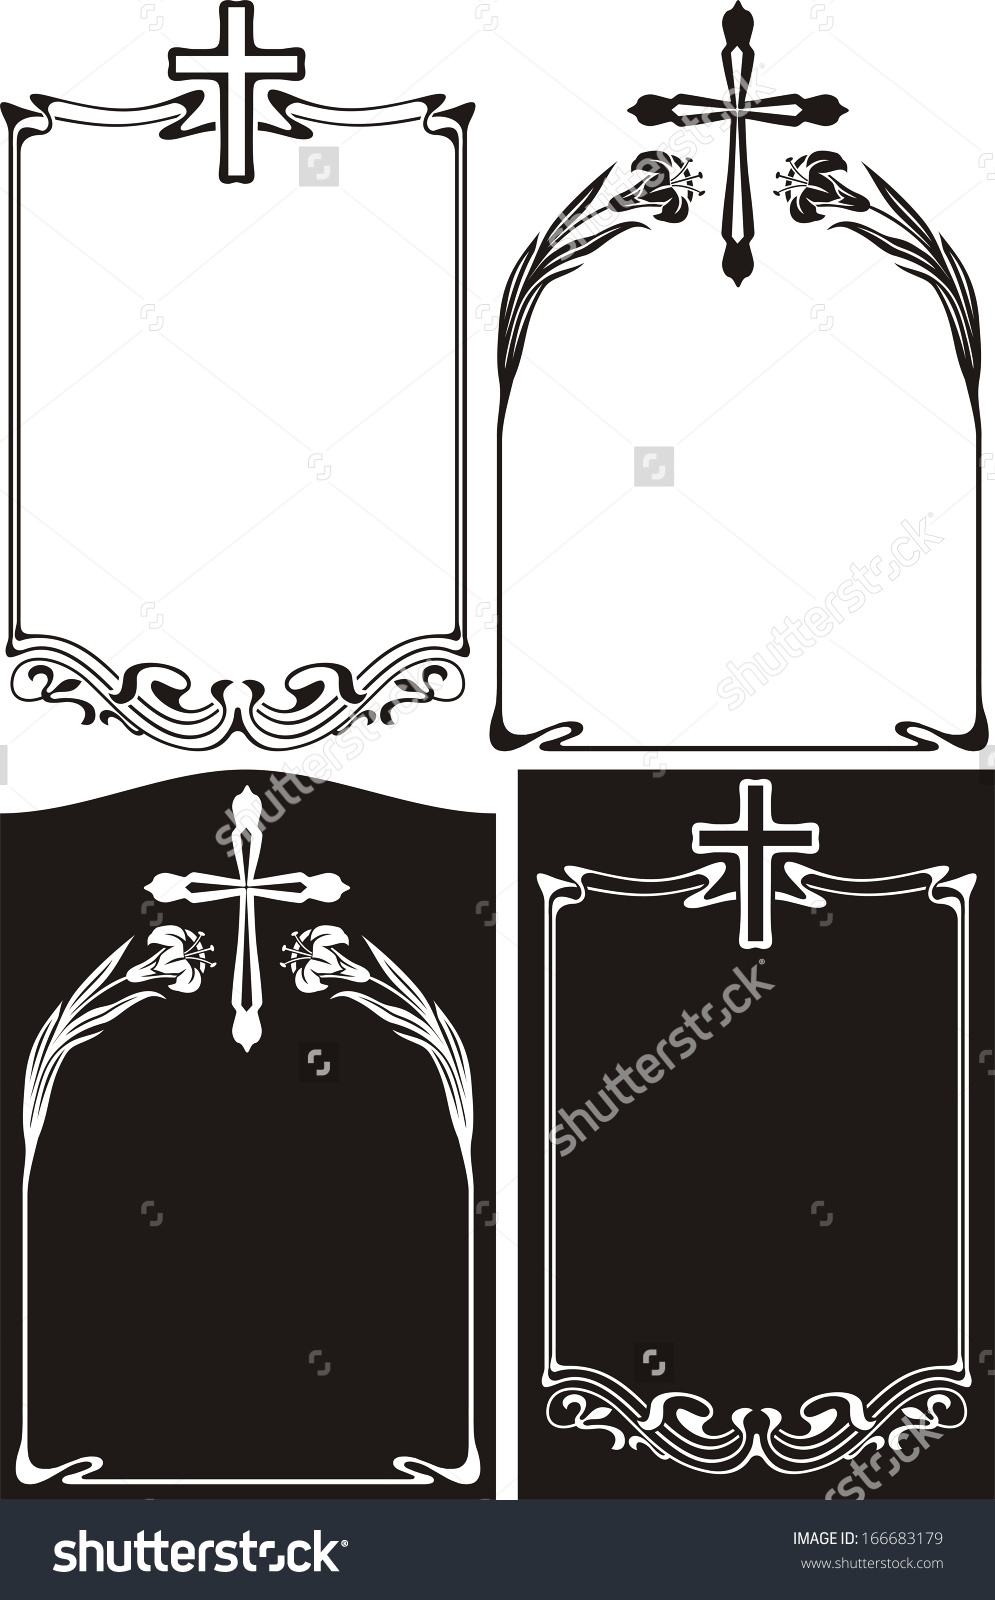 Obituary Memorial Plaque Art Deco Frames Stock Vector 166683179.